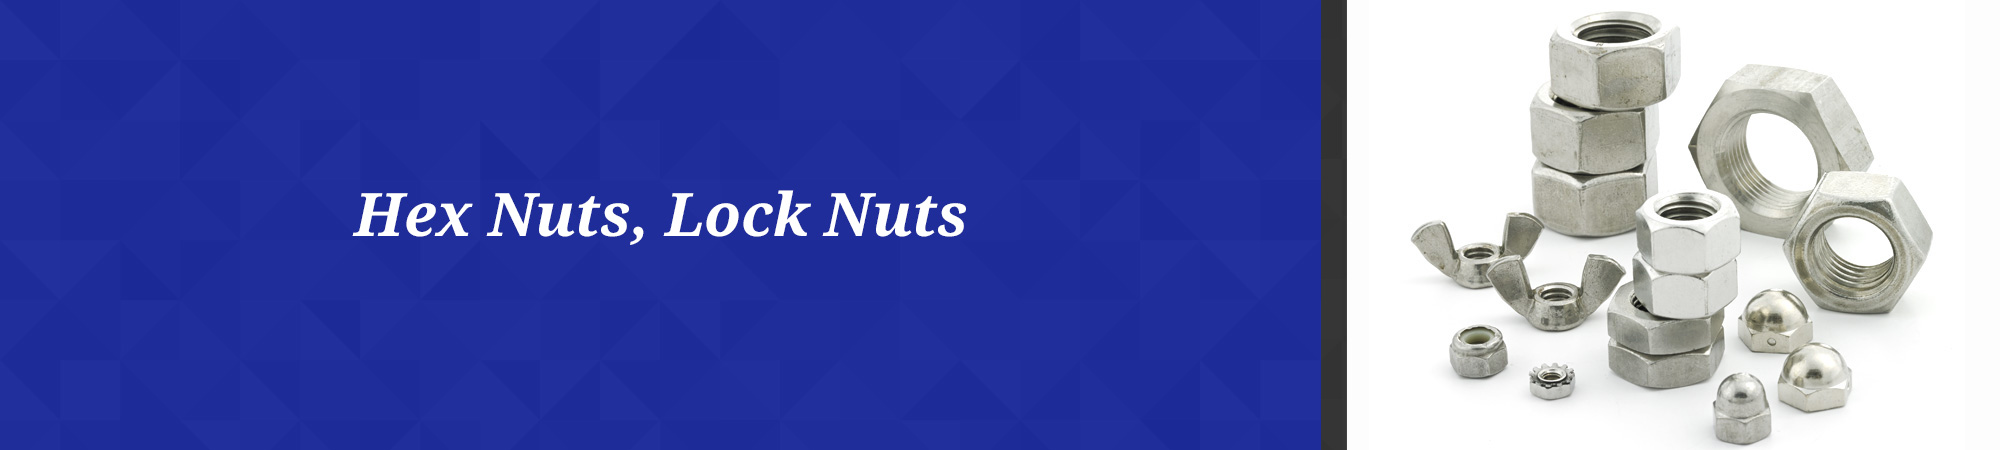 Hex Nuts and Lock Nuts